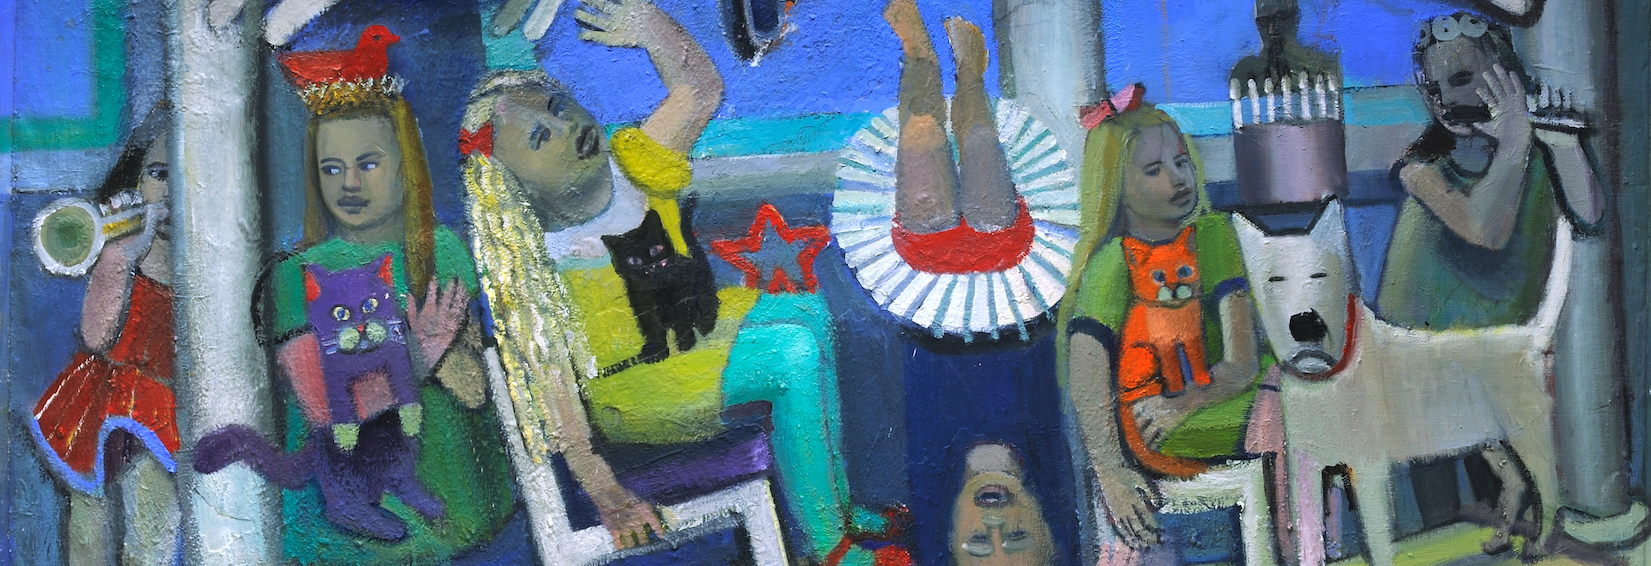 Abstract painting of figures on a porch